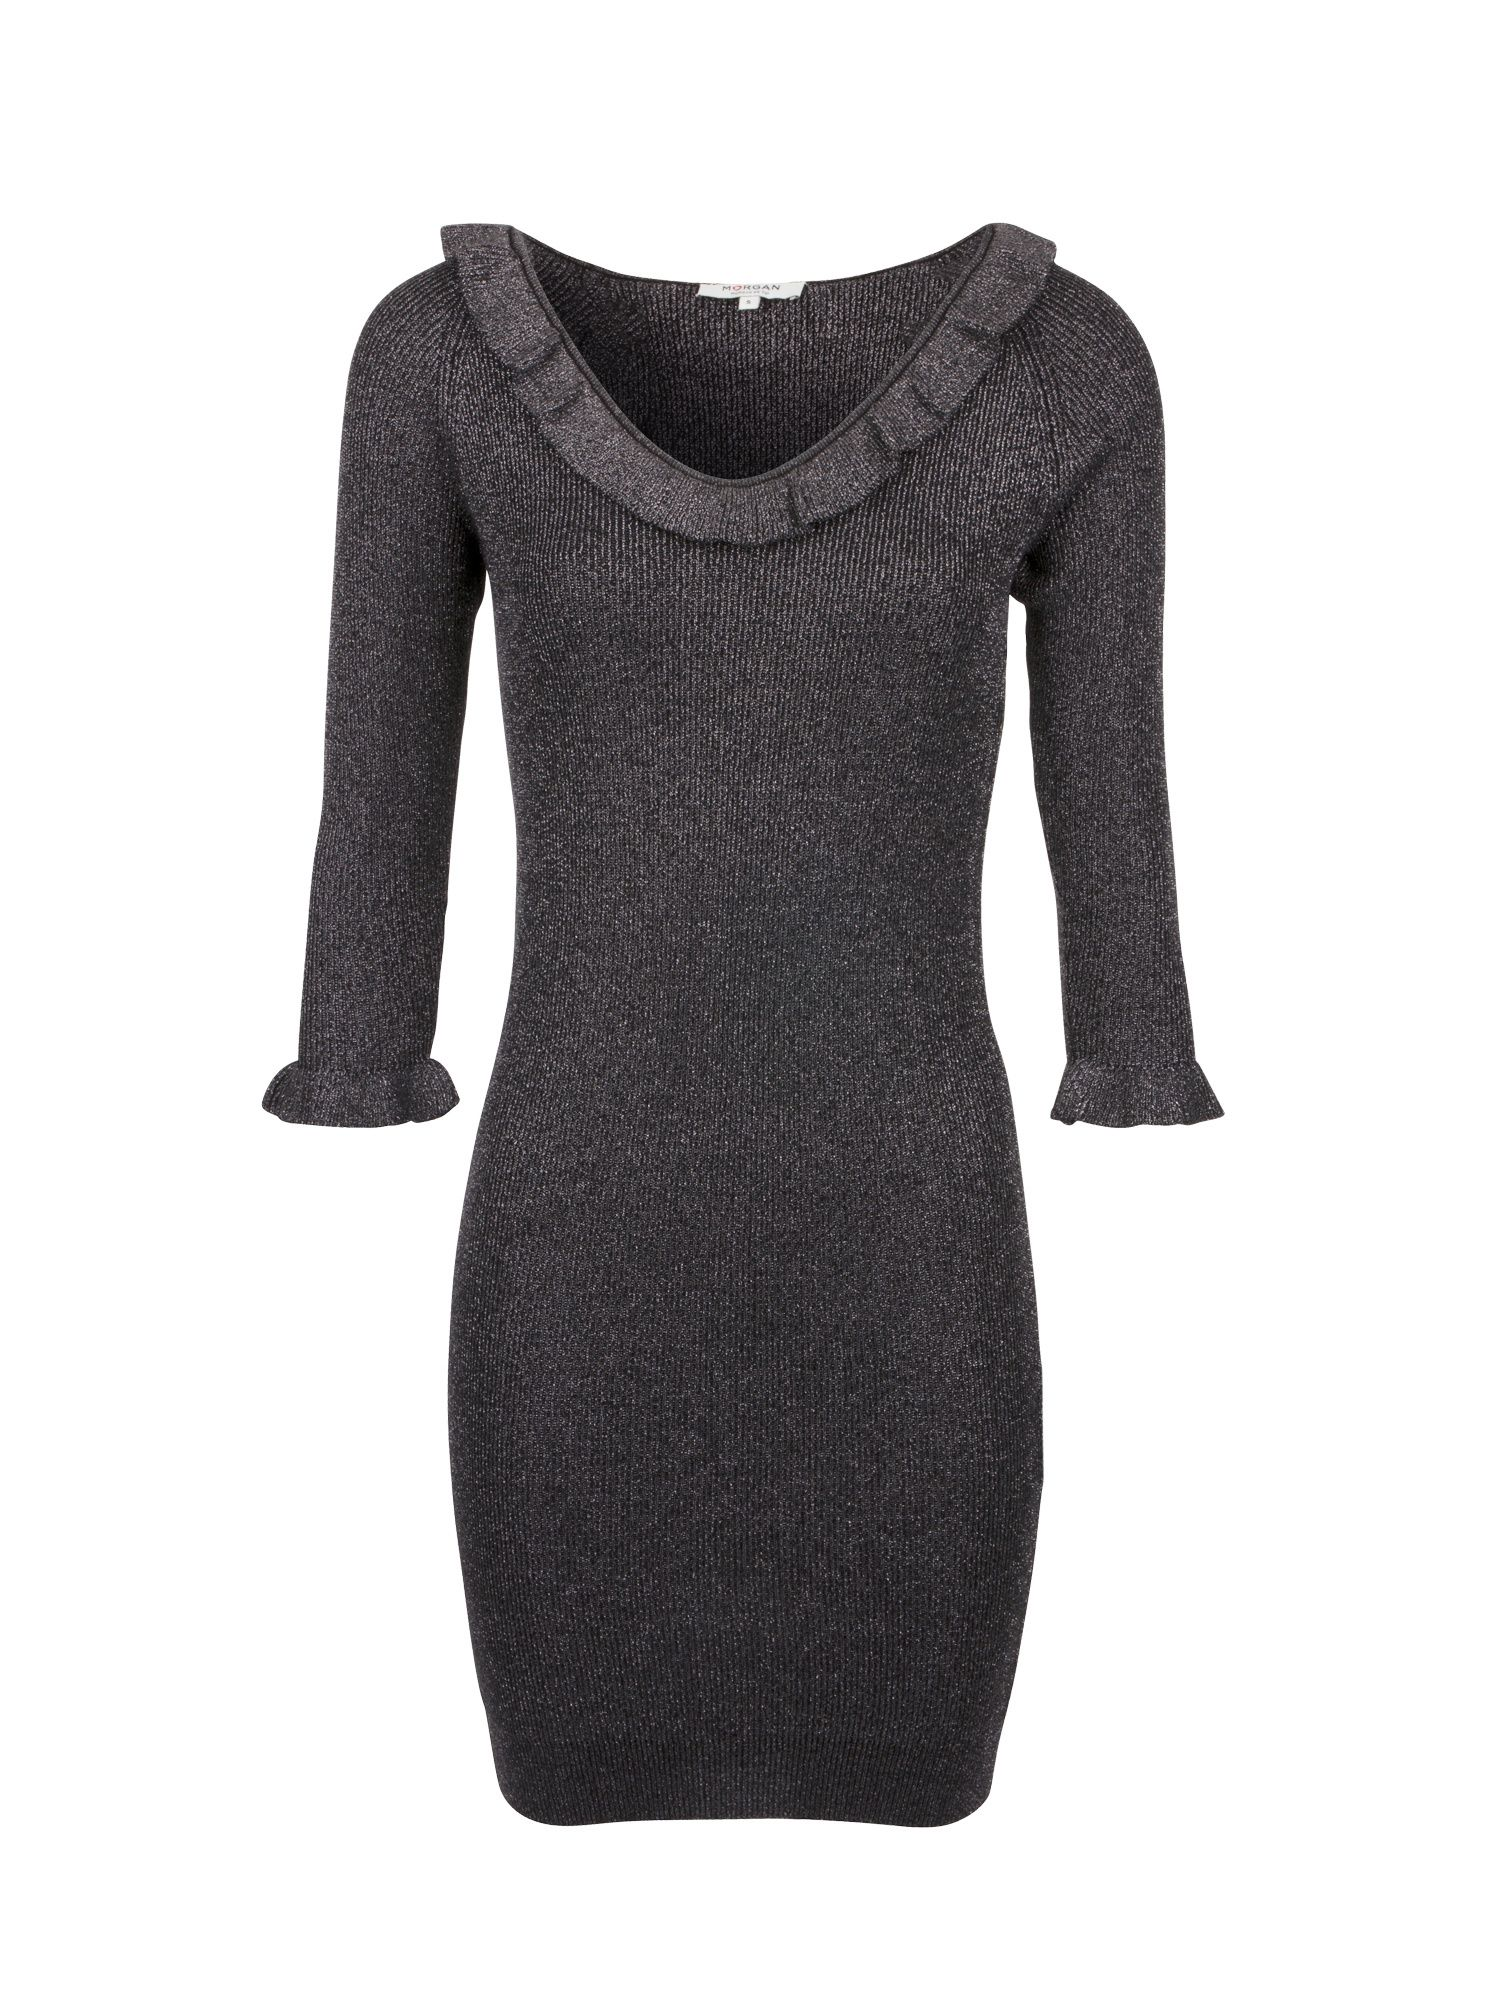 Morgan Metallic Knit Dress With Ruffles, Grey